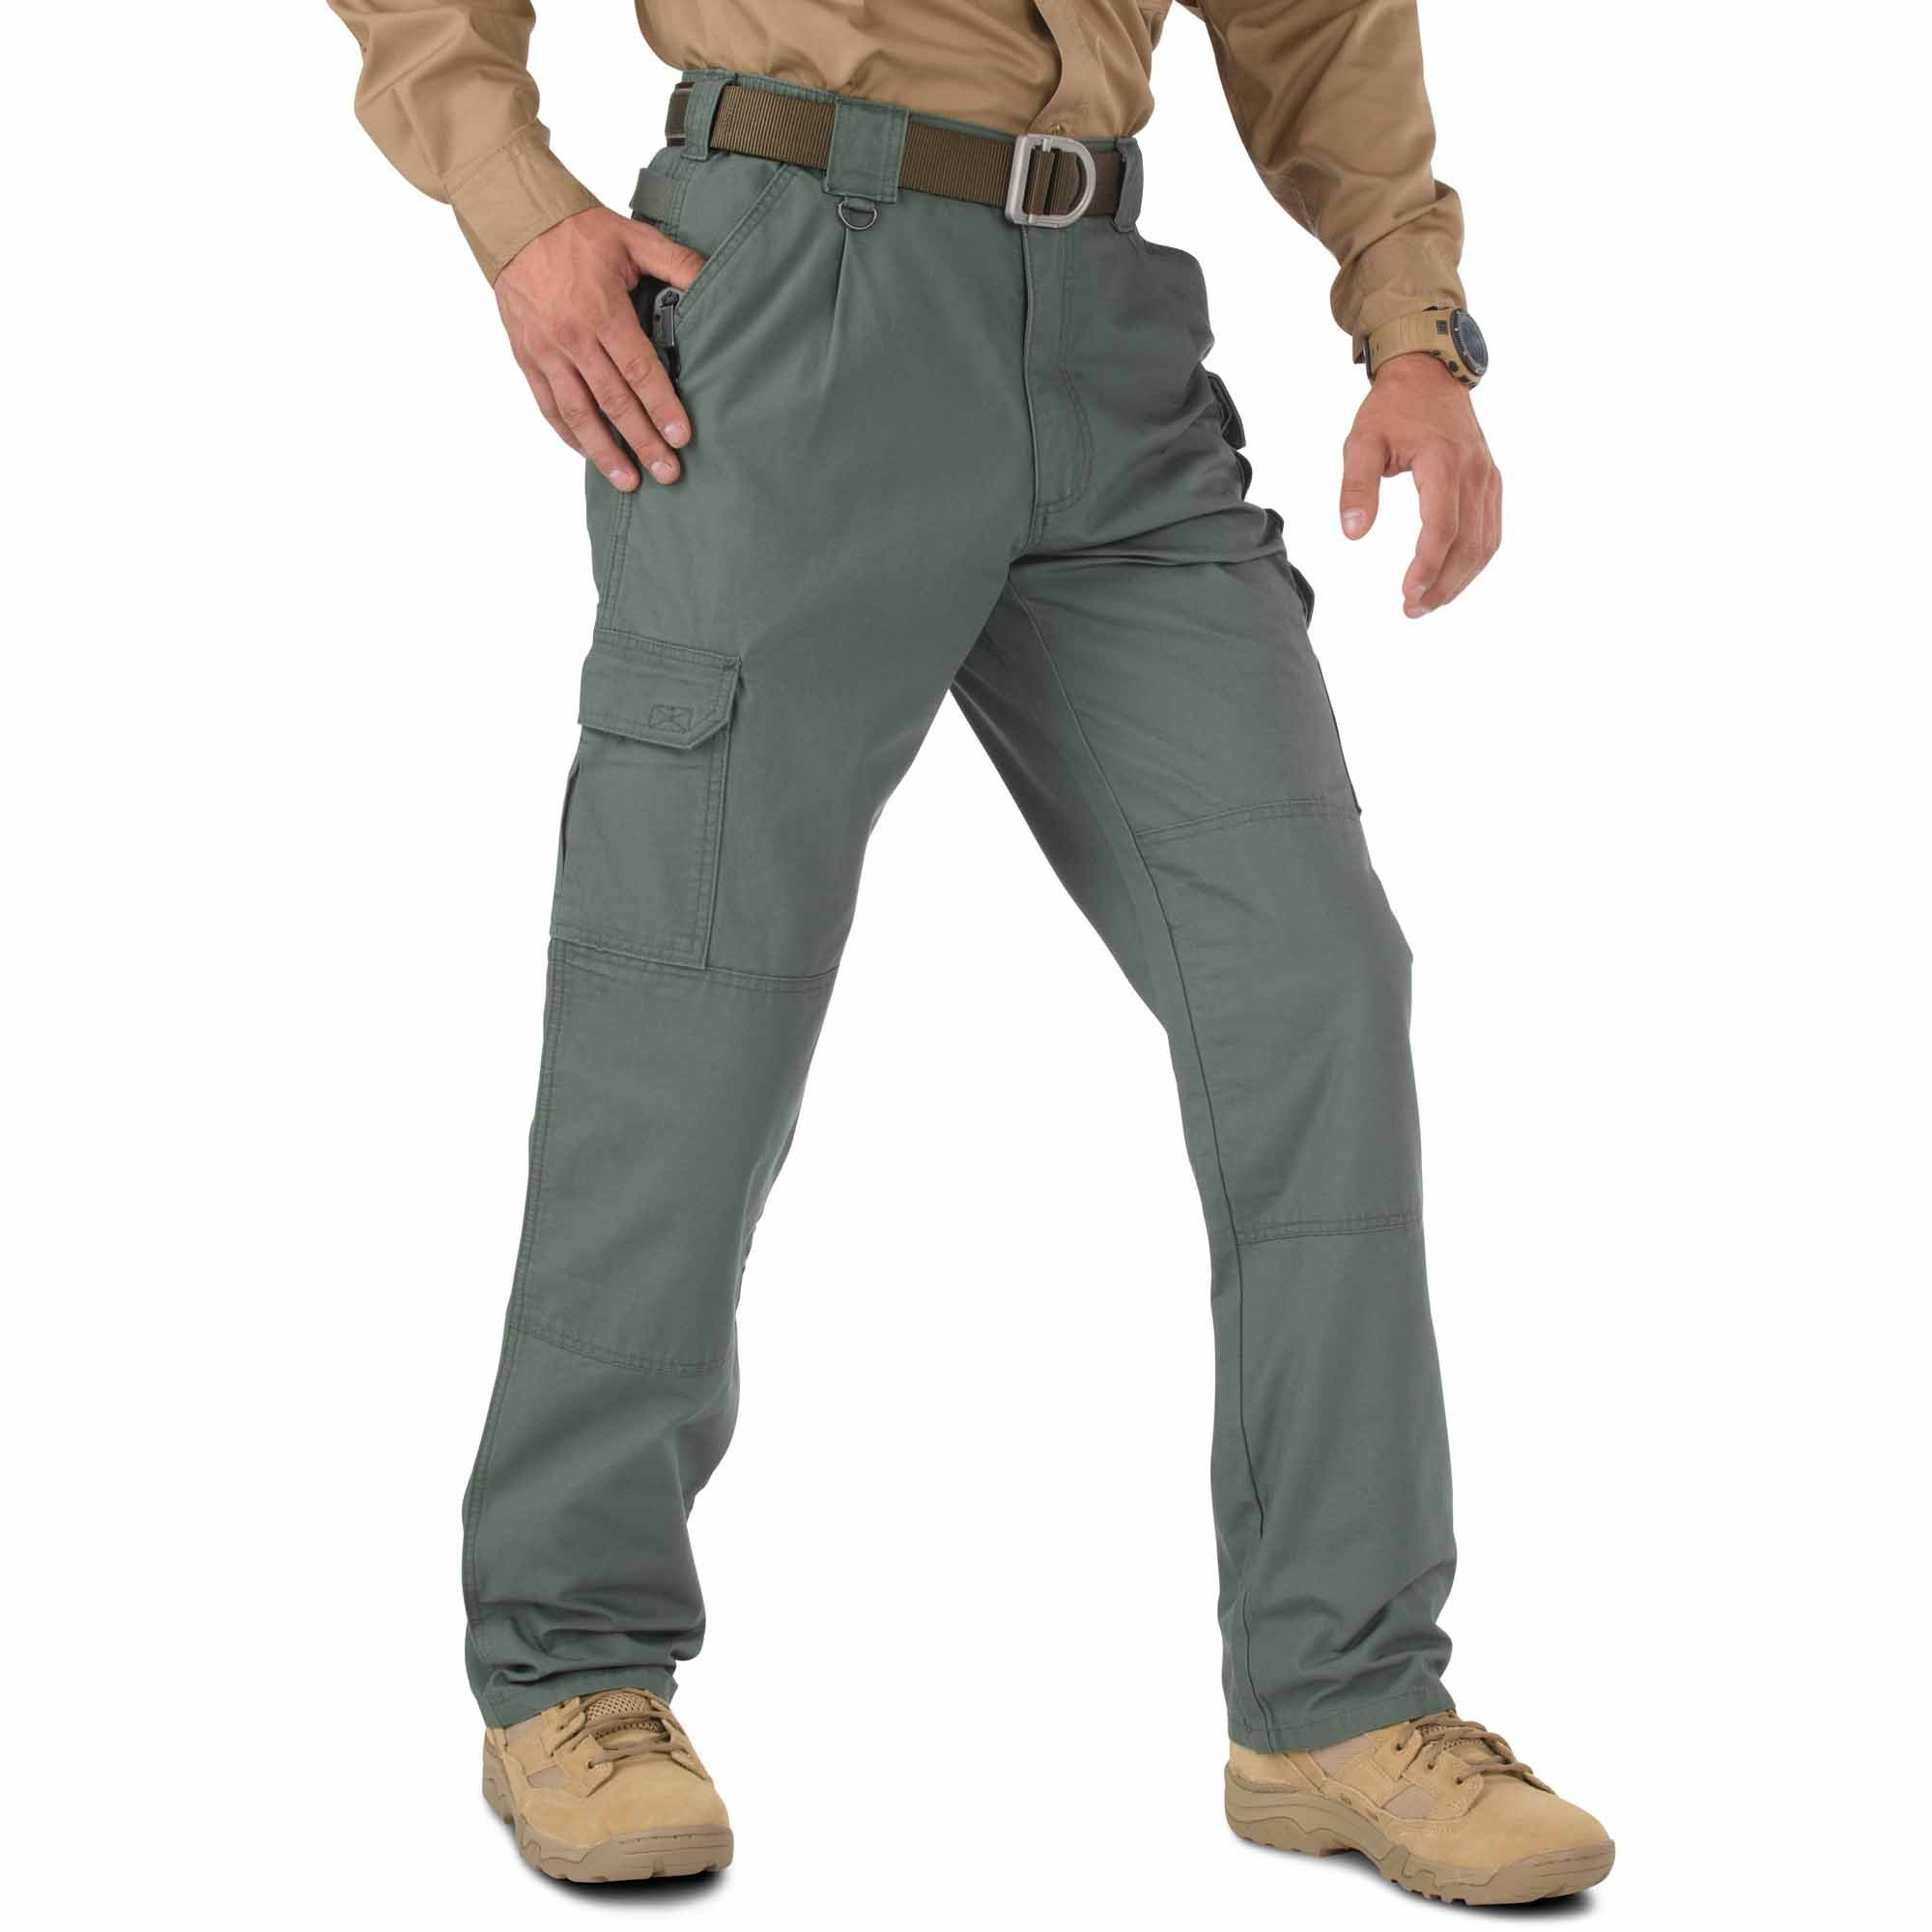 5.11 Tactical Pants,OD Green,42Wx36L by 5.11